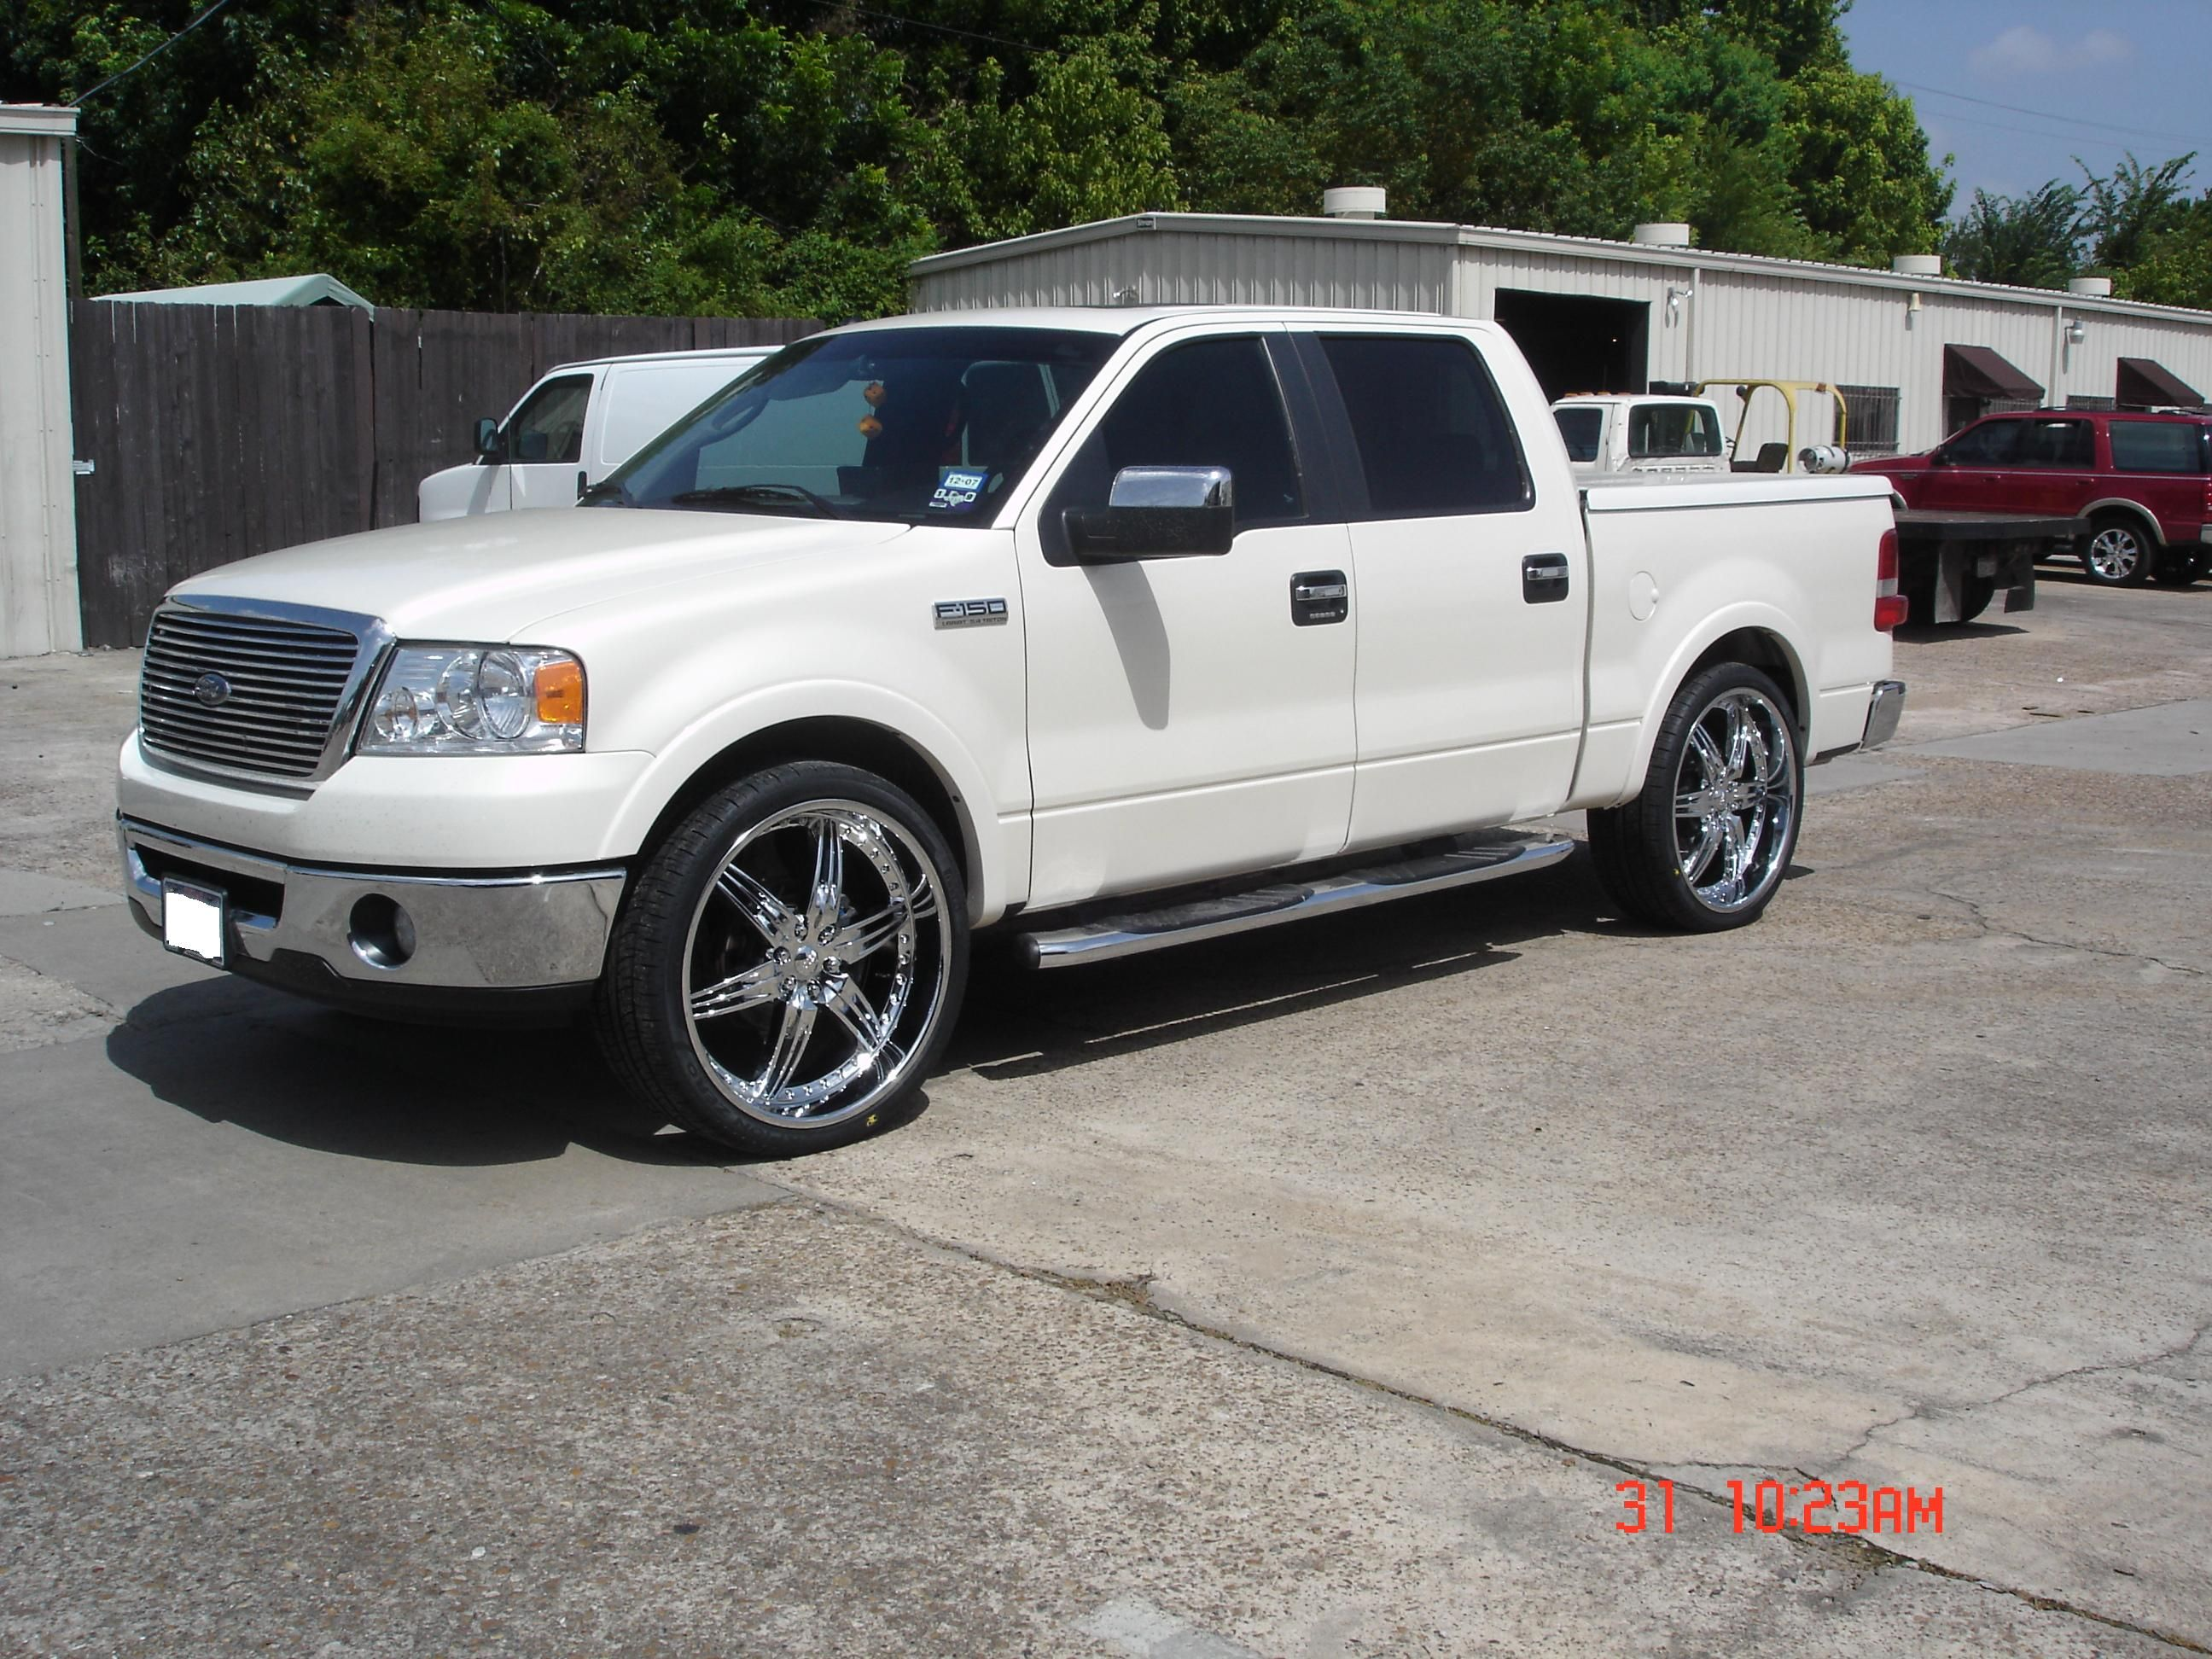 Ford f 150 on 24 inch rims find the classic rims of your dreams